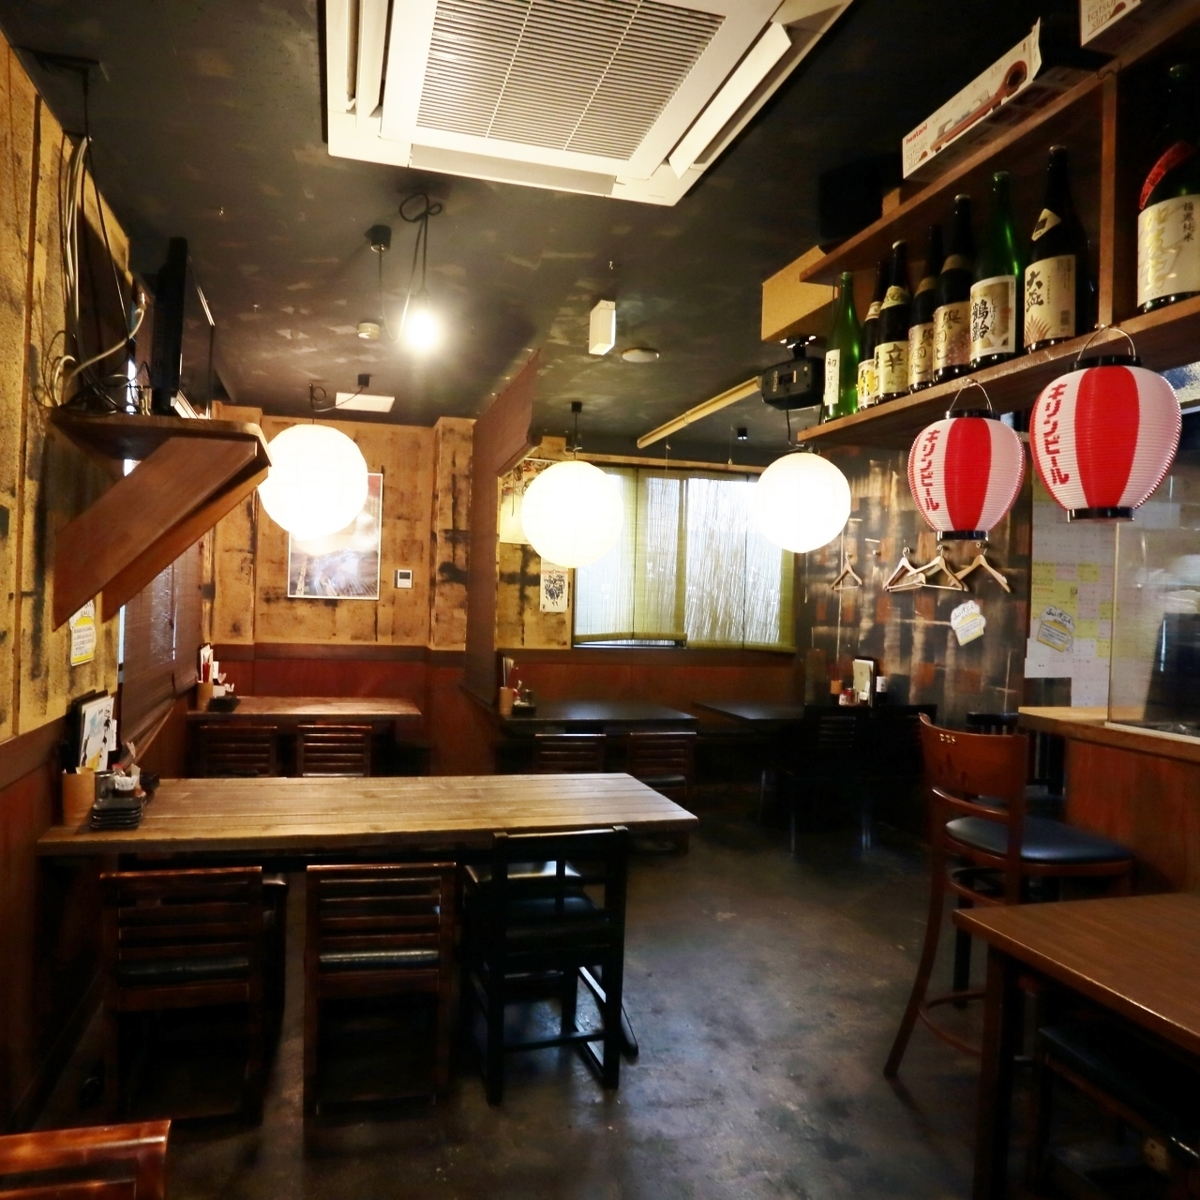 It is a cozy space like a popular pub in a downtown ♪